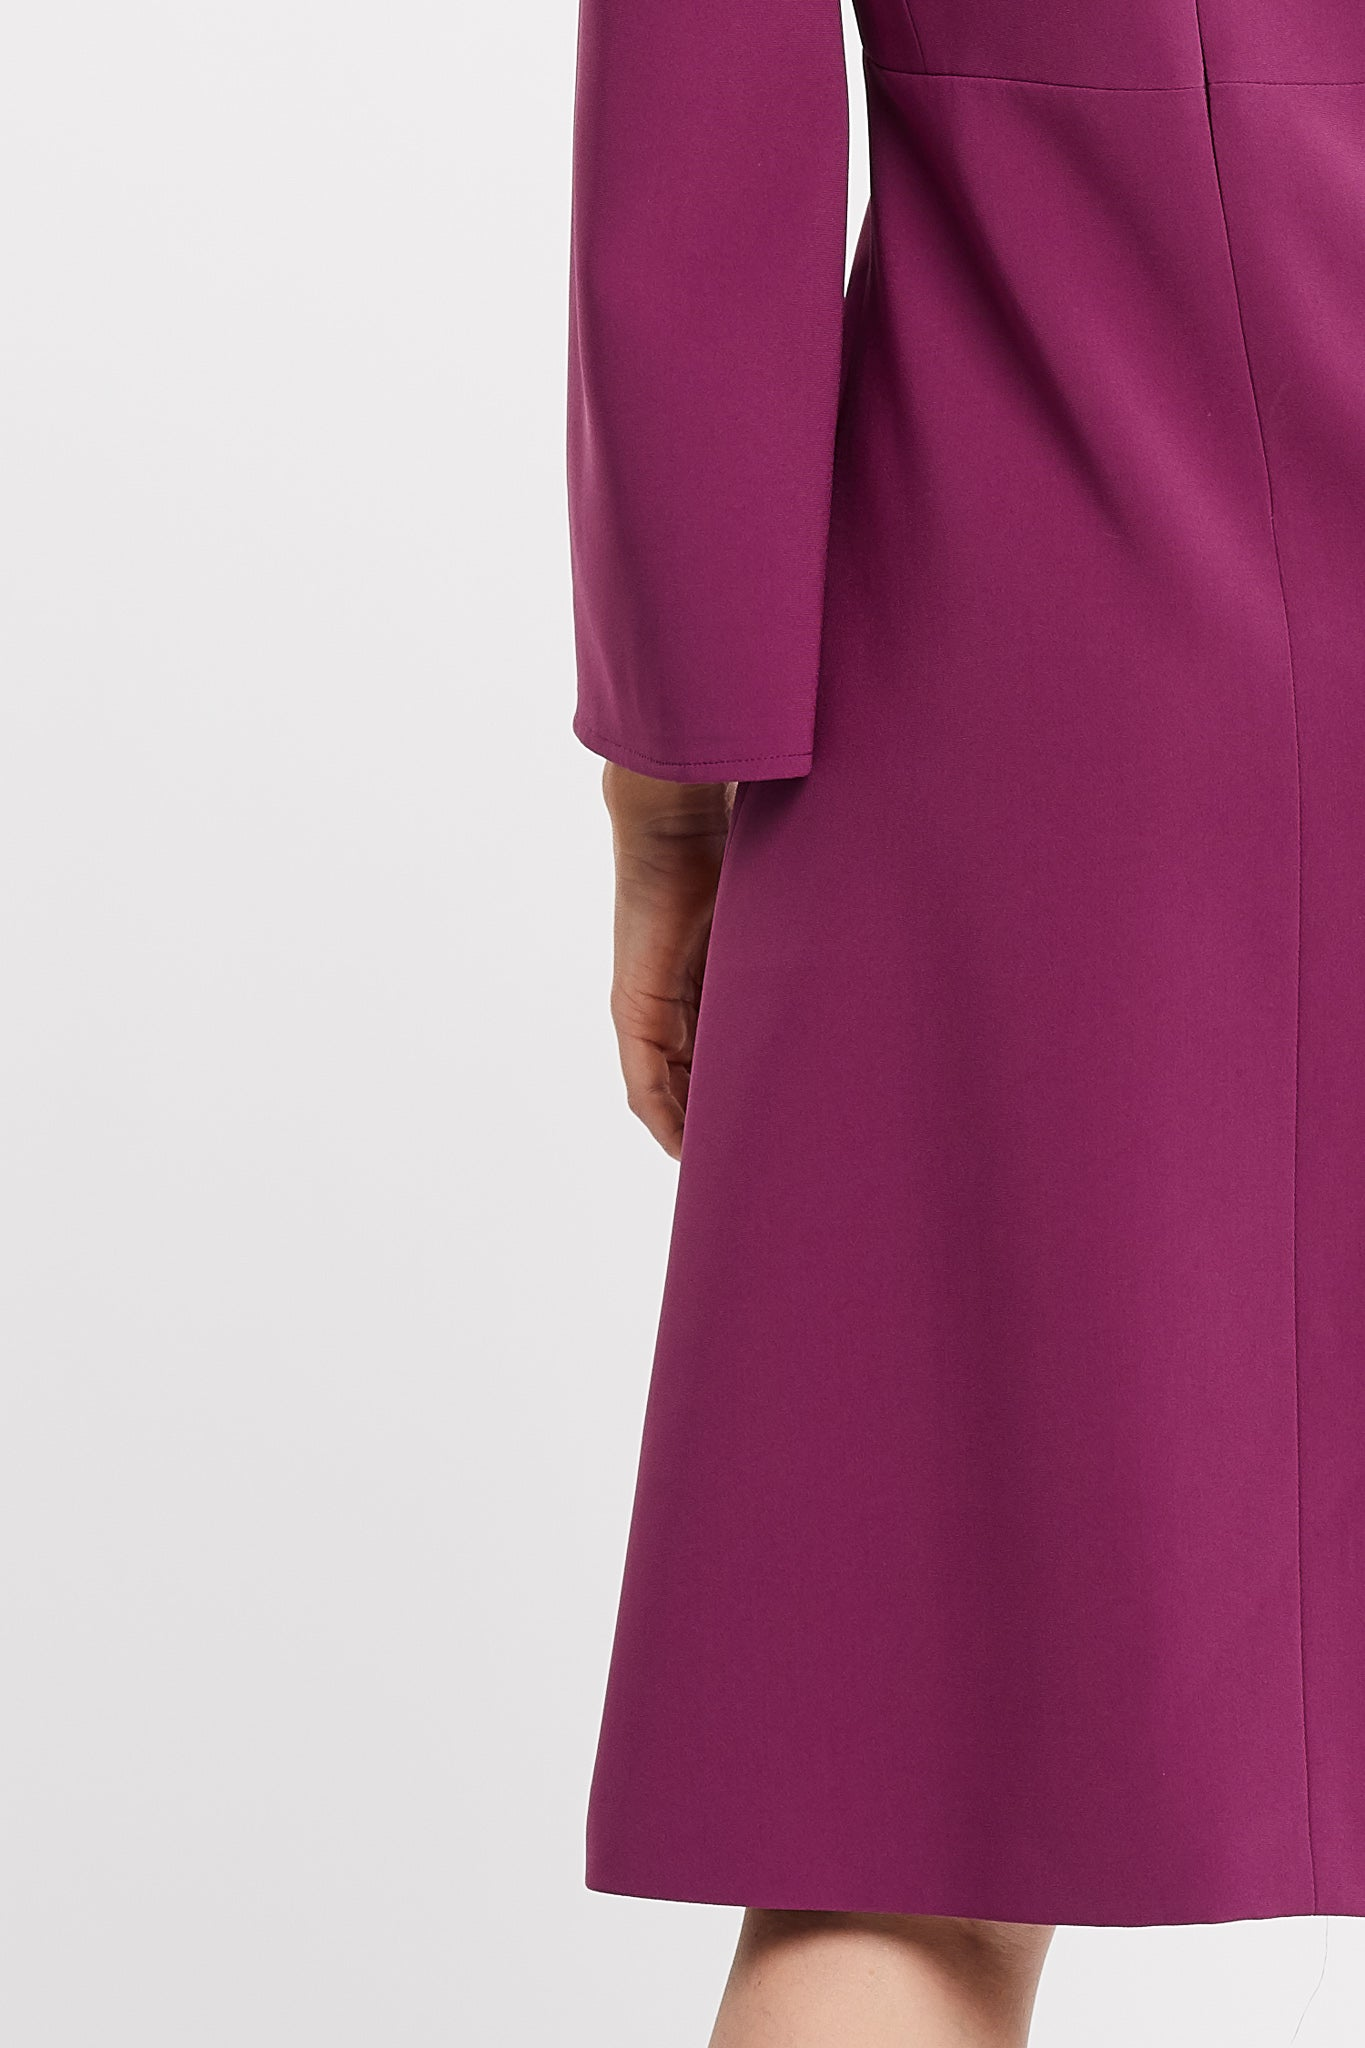 Vamilla Long Sleeve Flared Skirt Pink Work and Cocktail Dress